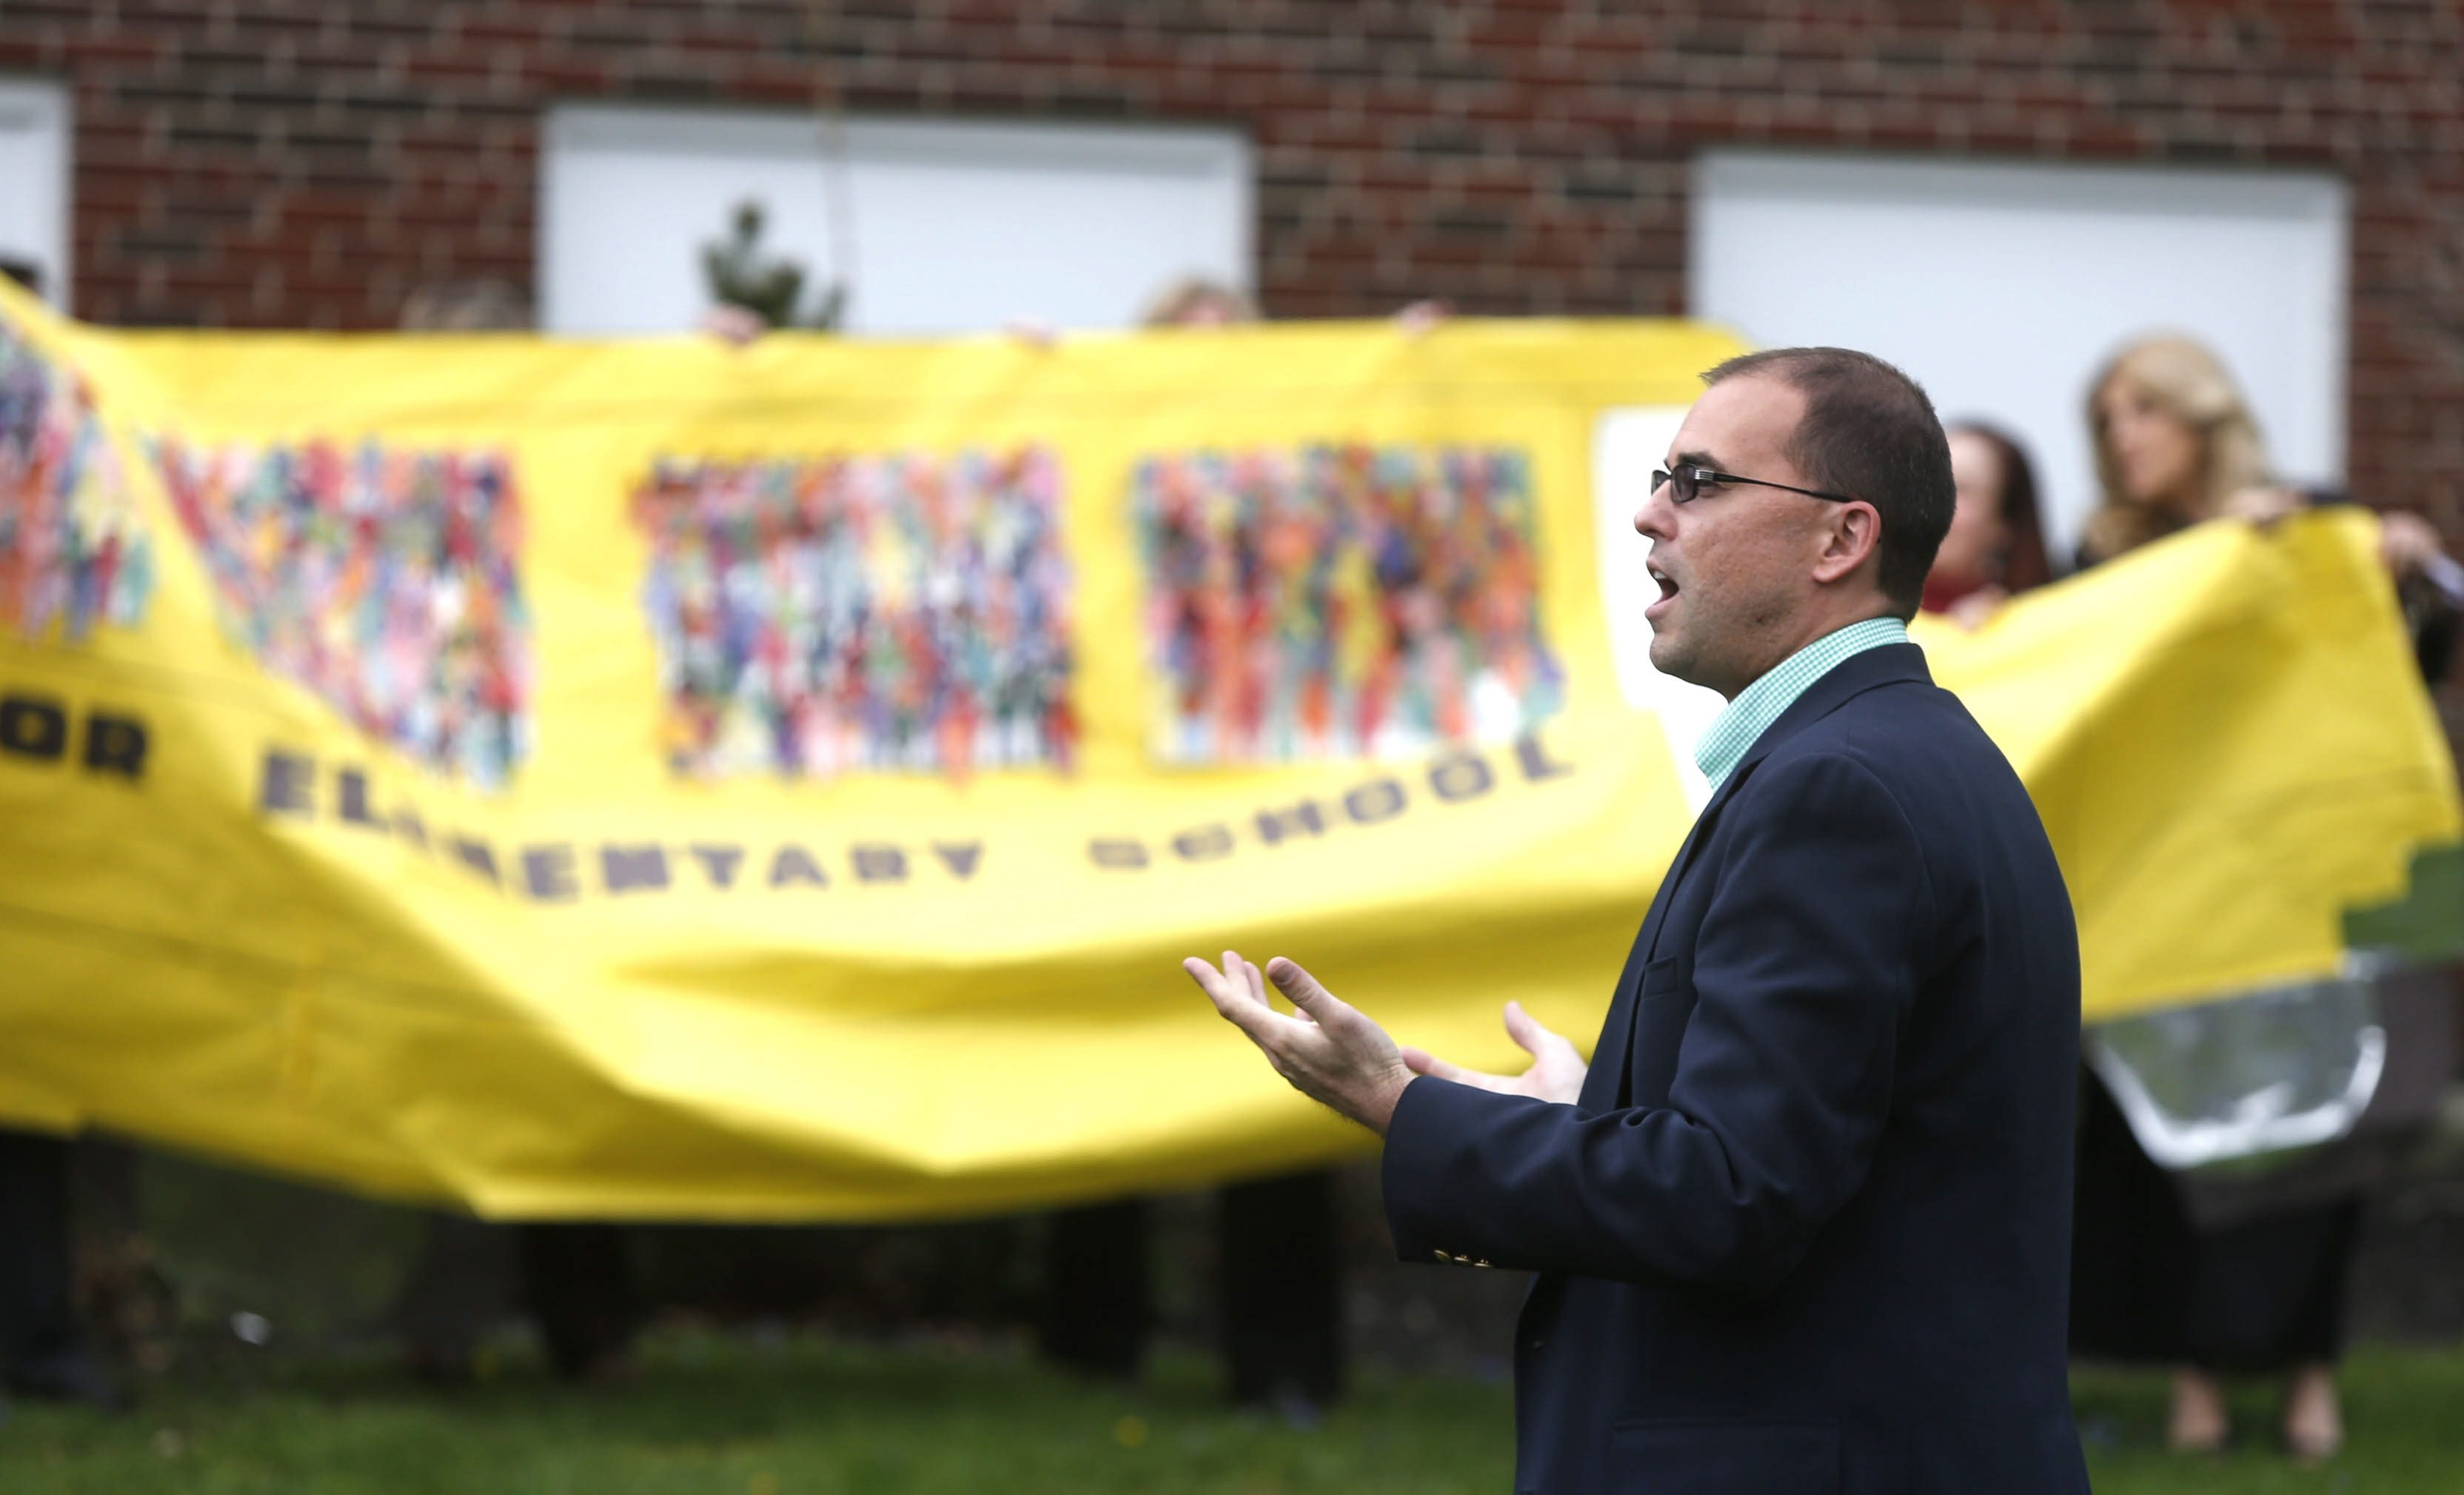 """Richard Jetter thanks those in attendance for their support at a rally May 7 held after the Hamburg superintendent reported his car had been vandalized during a school board meeting. The yellow energy bus sign held by members of the community in the photo from the rally refers to a book, """"The Energy Bus,"""" something Jetter liked to quote.  (Robert Kirkham/Buffalo News)"""